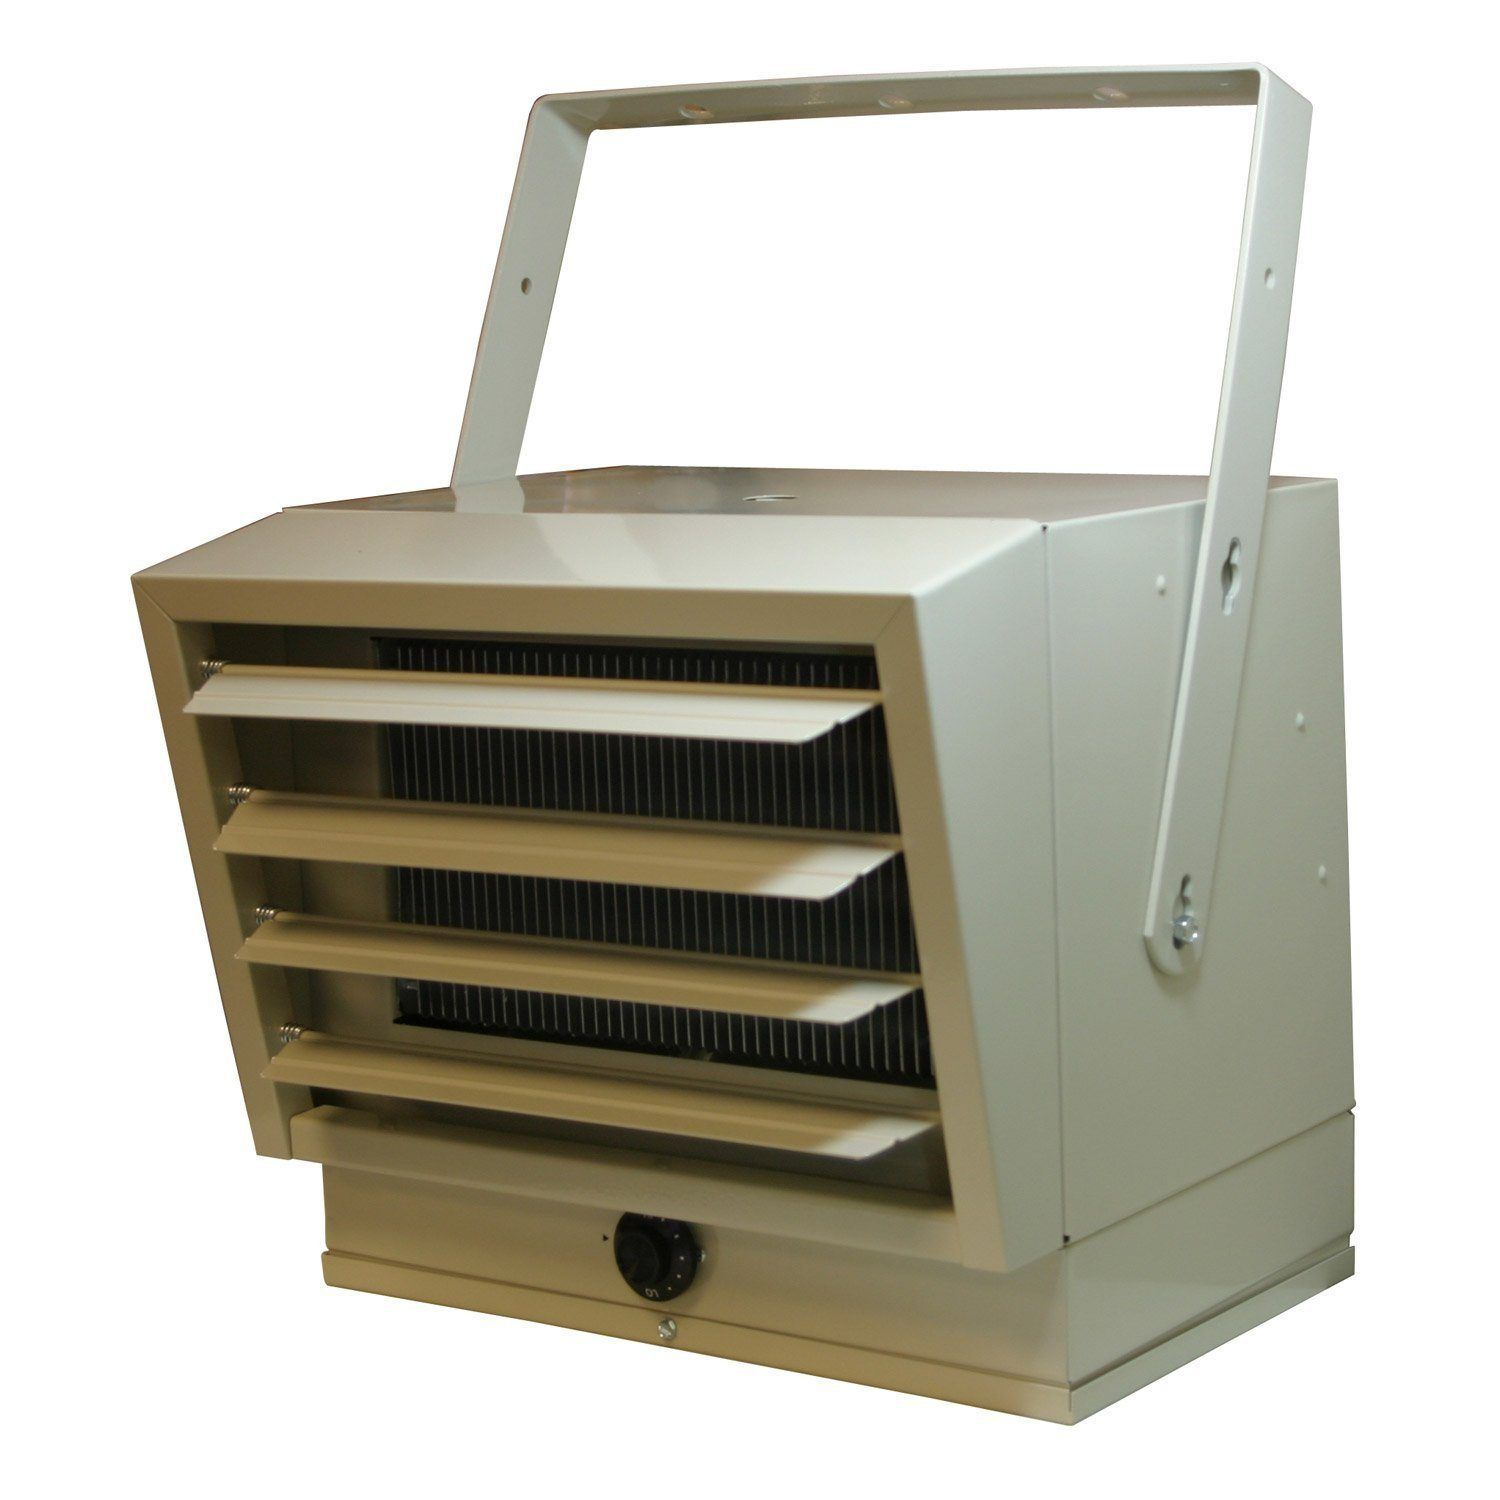 ceramic heater garage space electric heat fan air spin shop prod portable itm workshop work